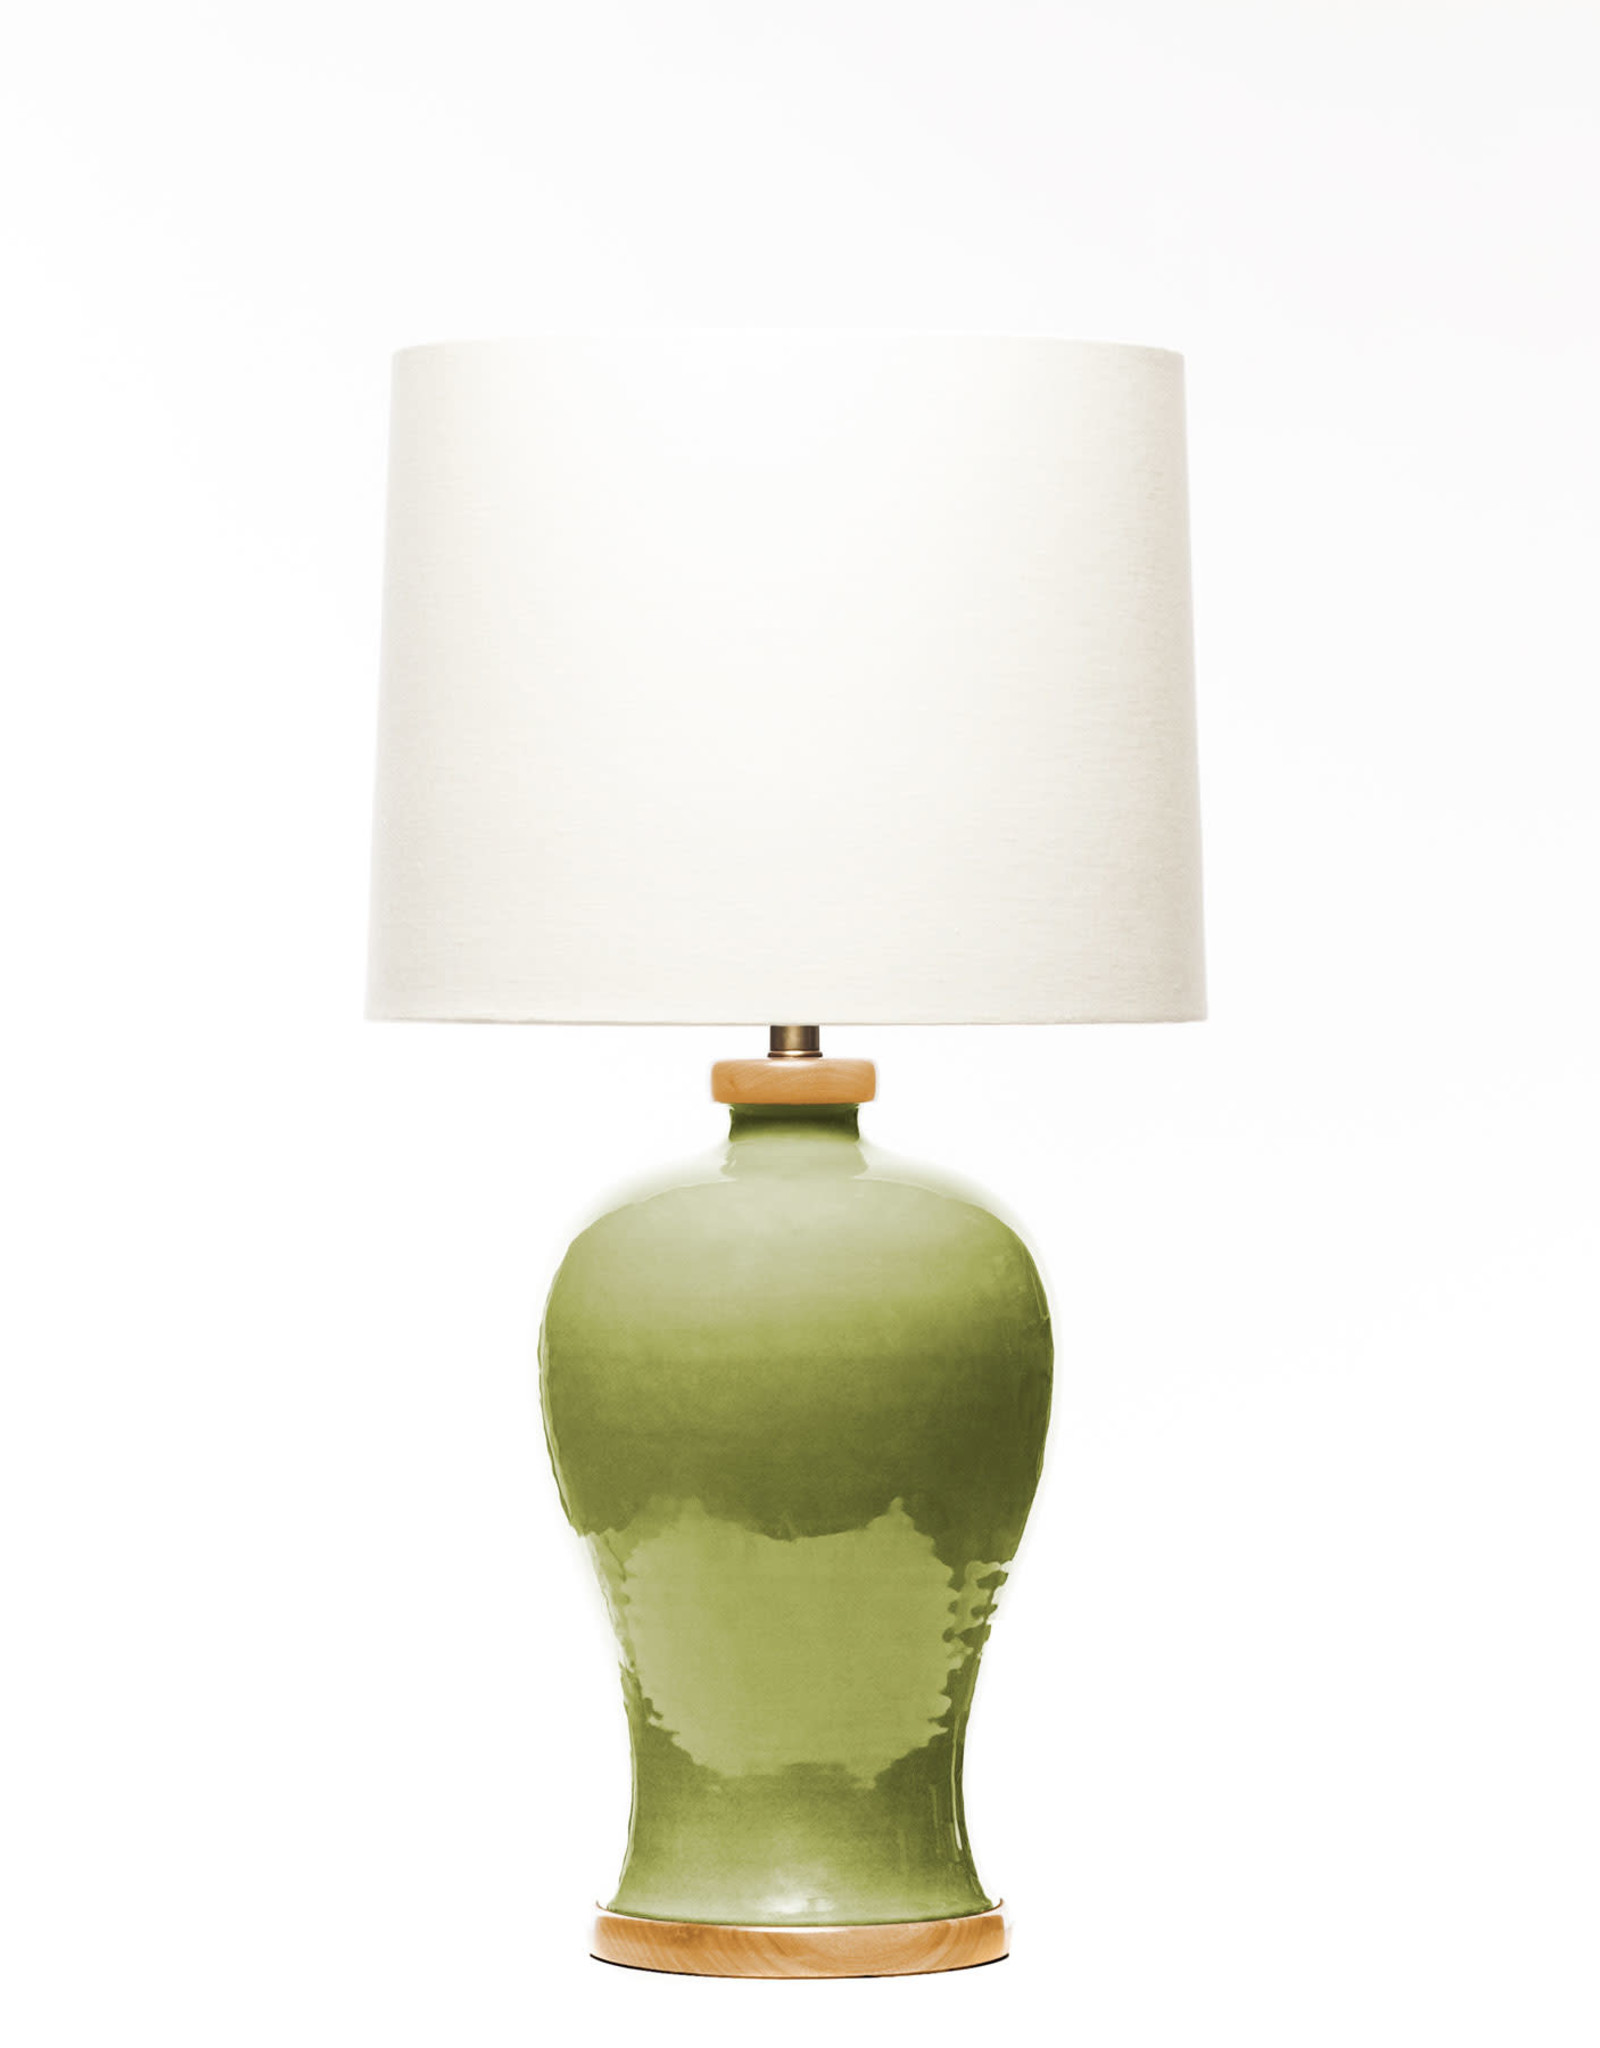 Lawrence & Scott Dashiell Table Lamp in Celadon with Oak Base